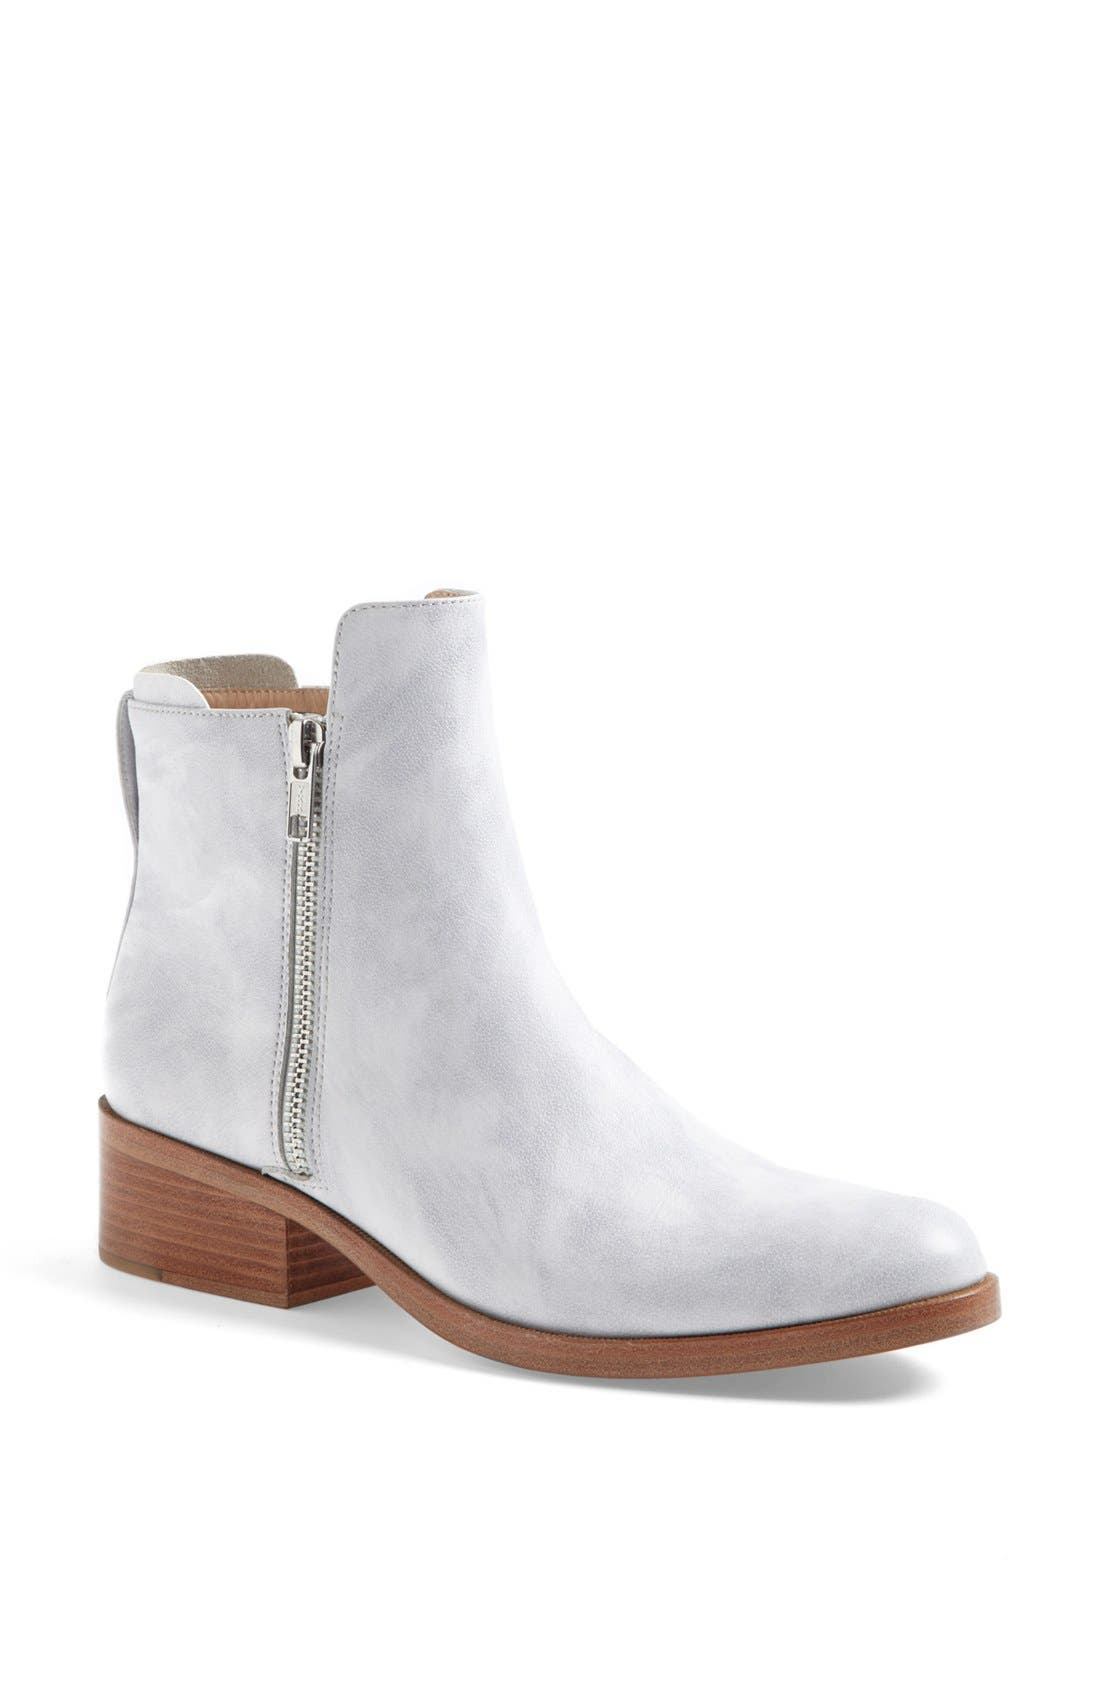 Main Image - 3.1 Phillip Lim 'Alexa' Boot